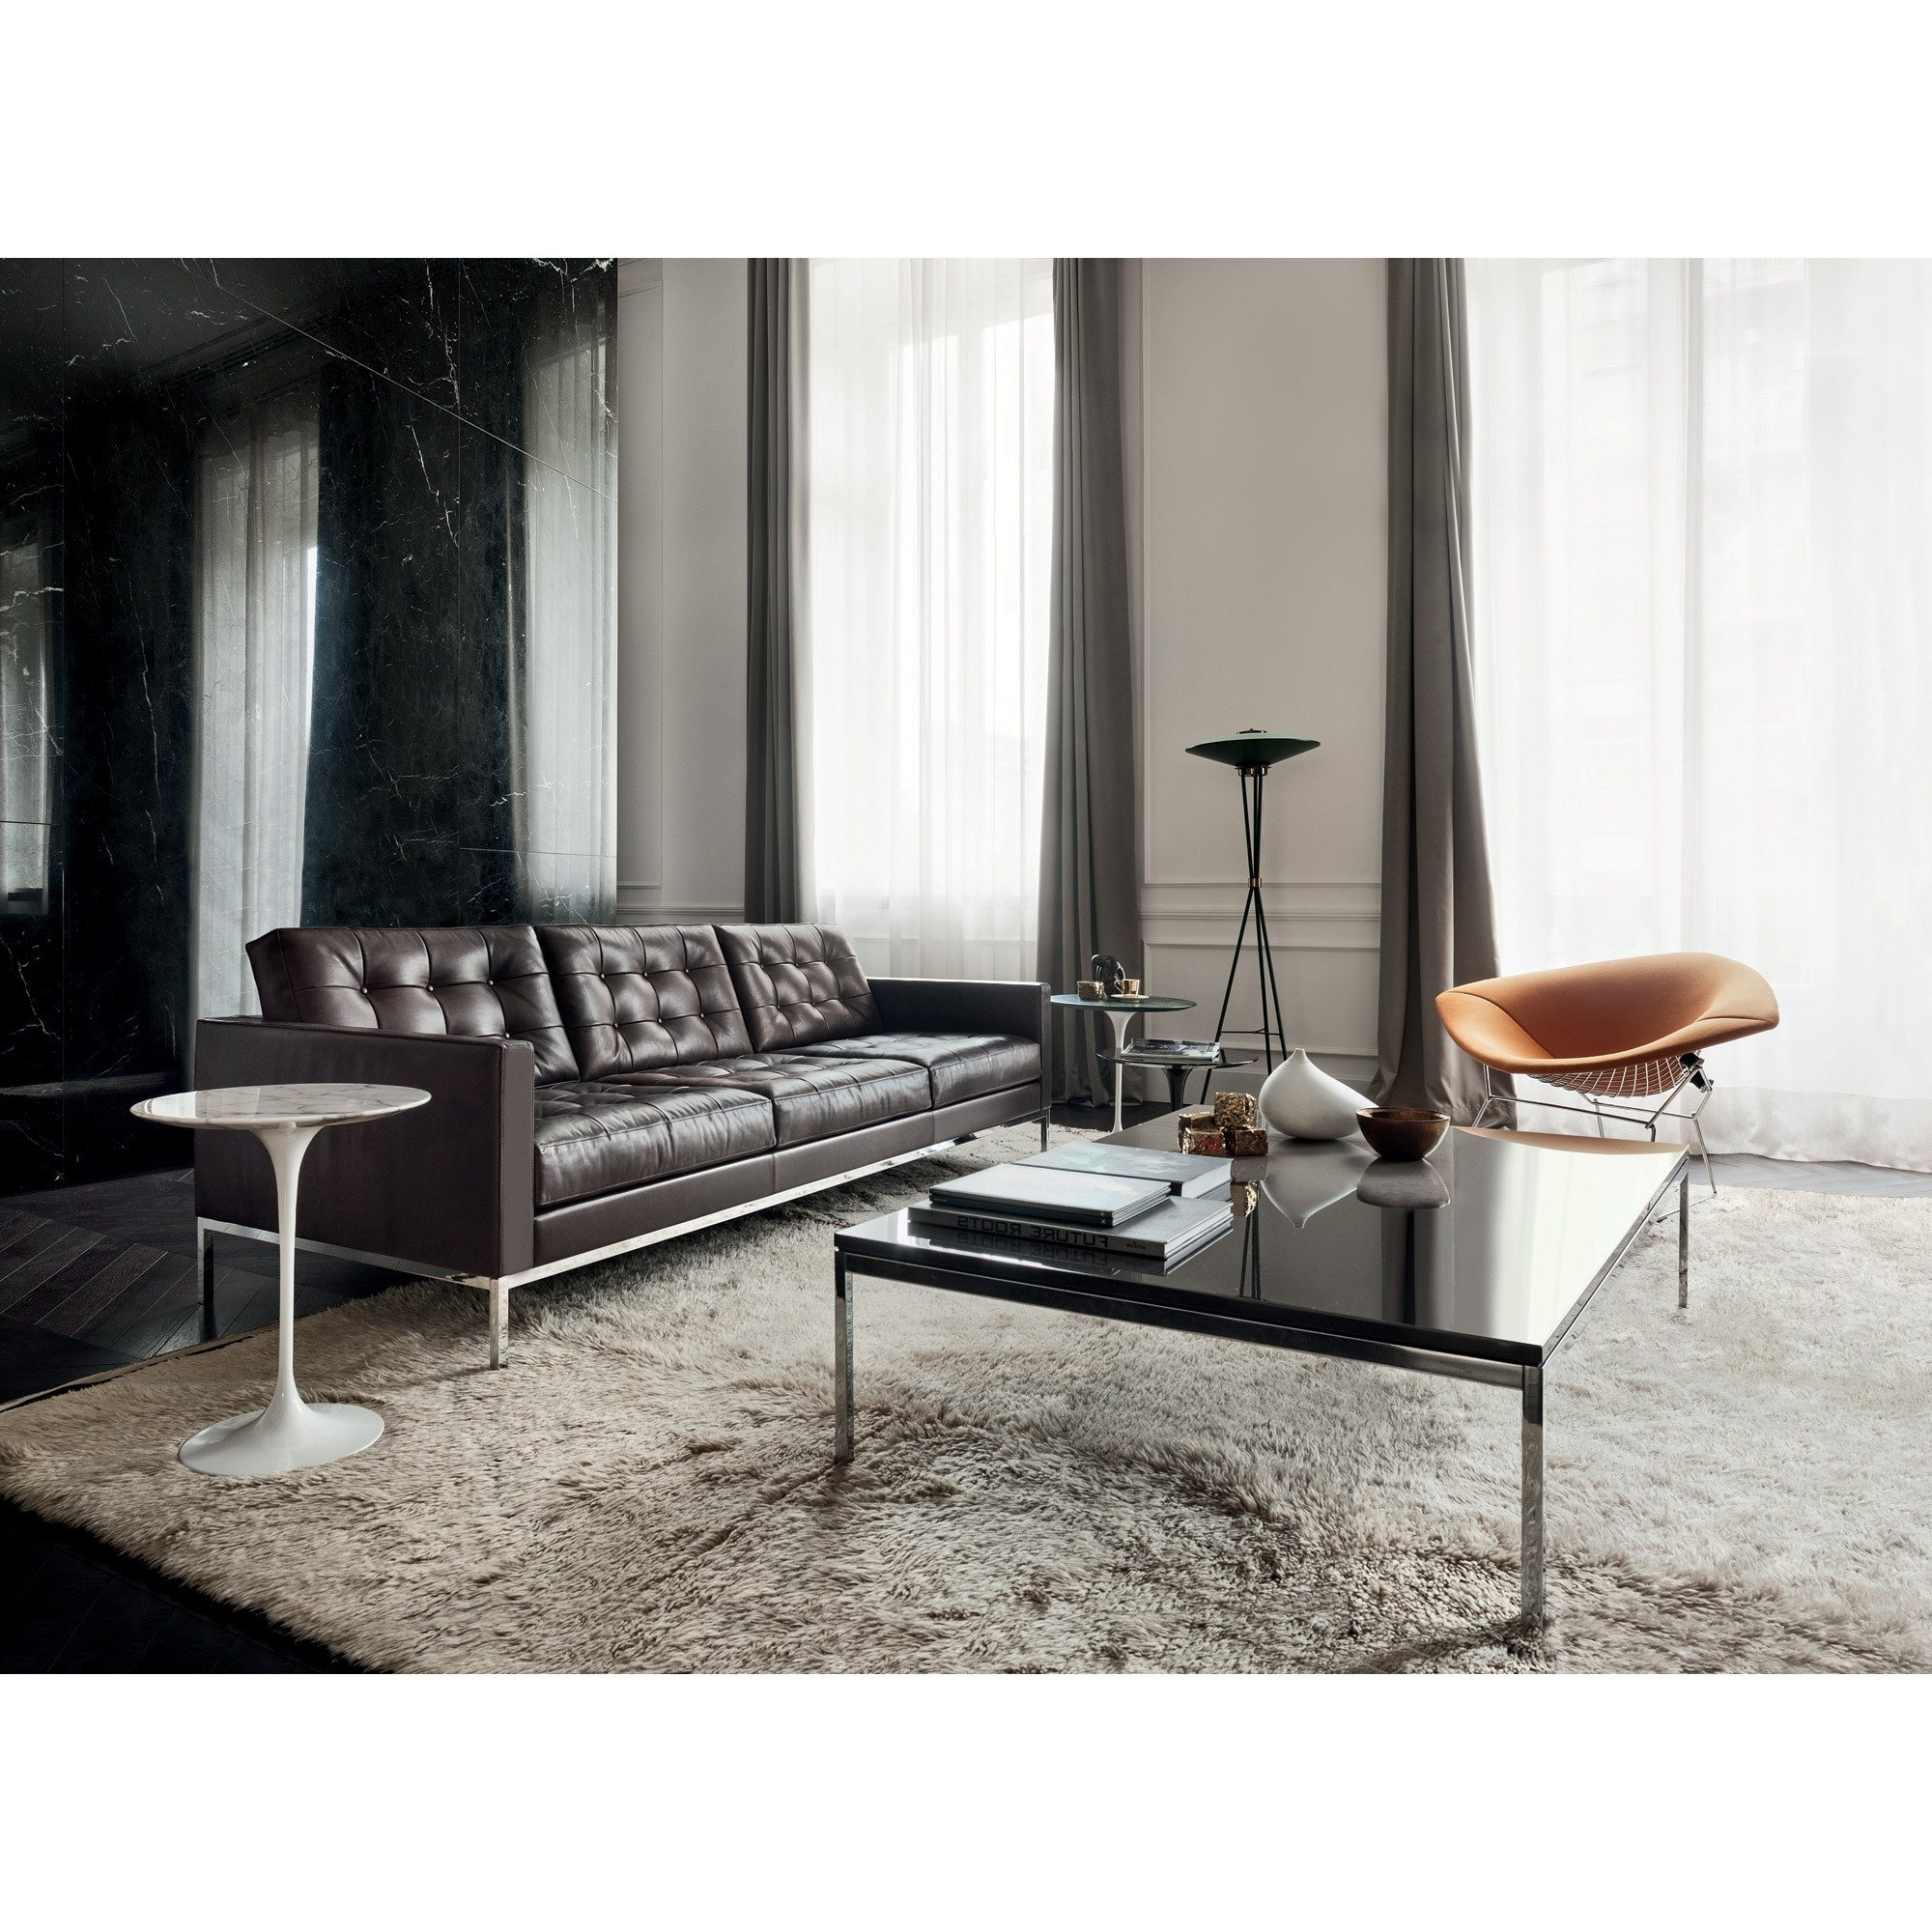 Florence Knoll 'relax' Sofa (View 19 of 20)